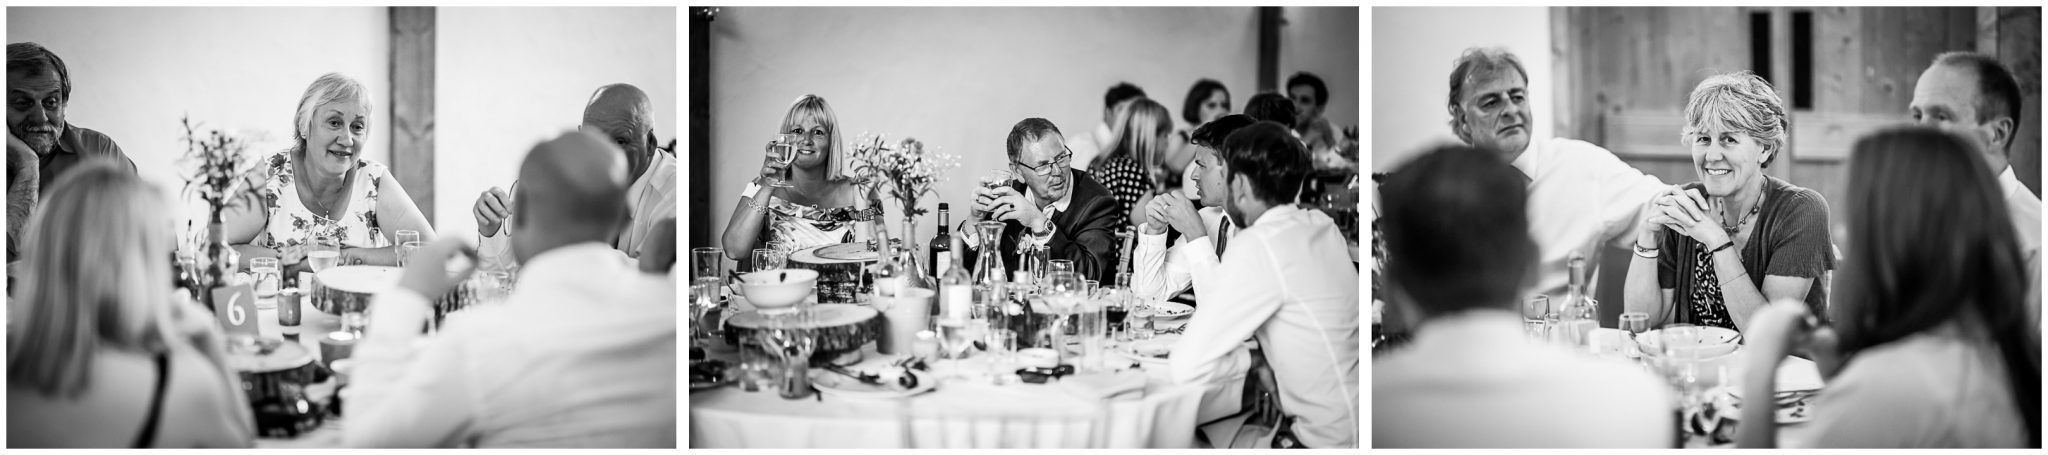 Candid photos of guests during the meal